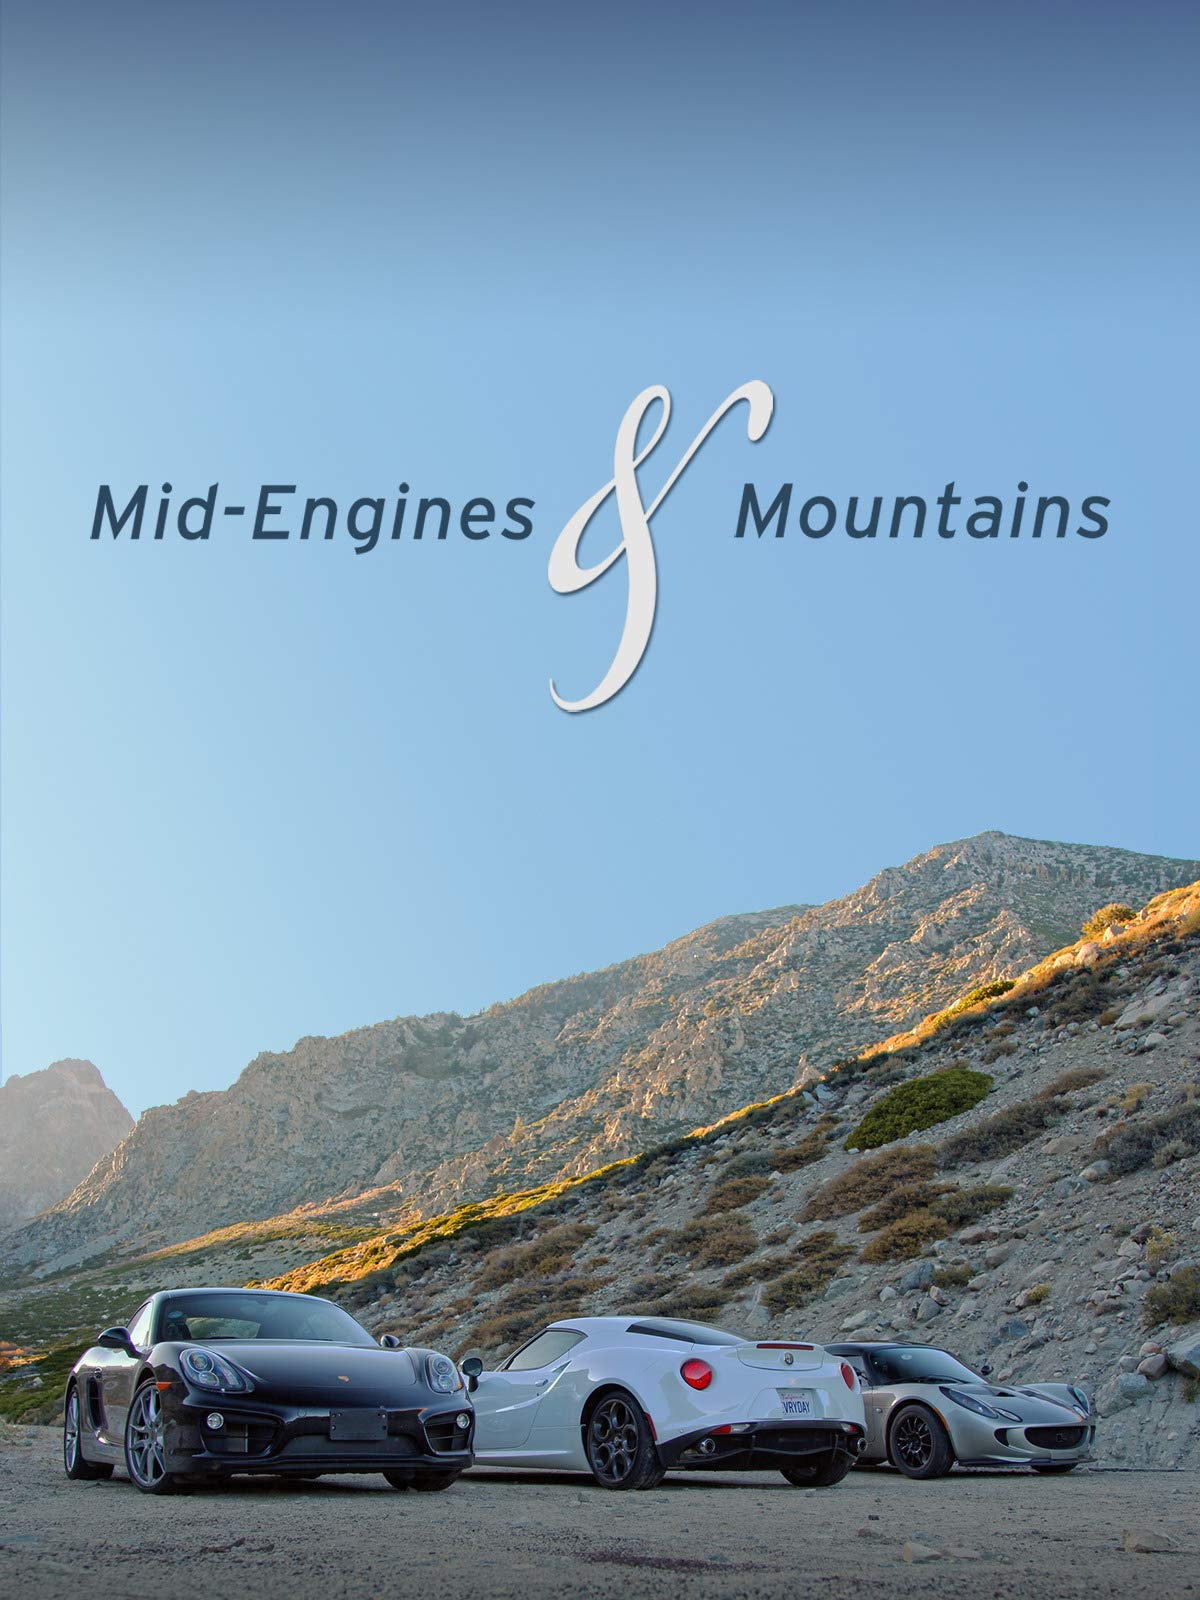 Mid-Engines & Mountains